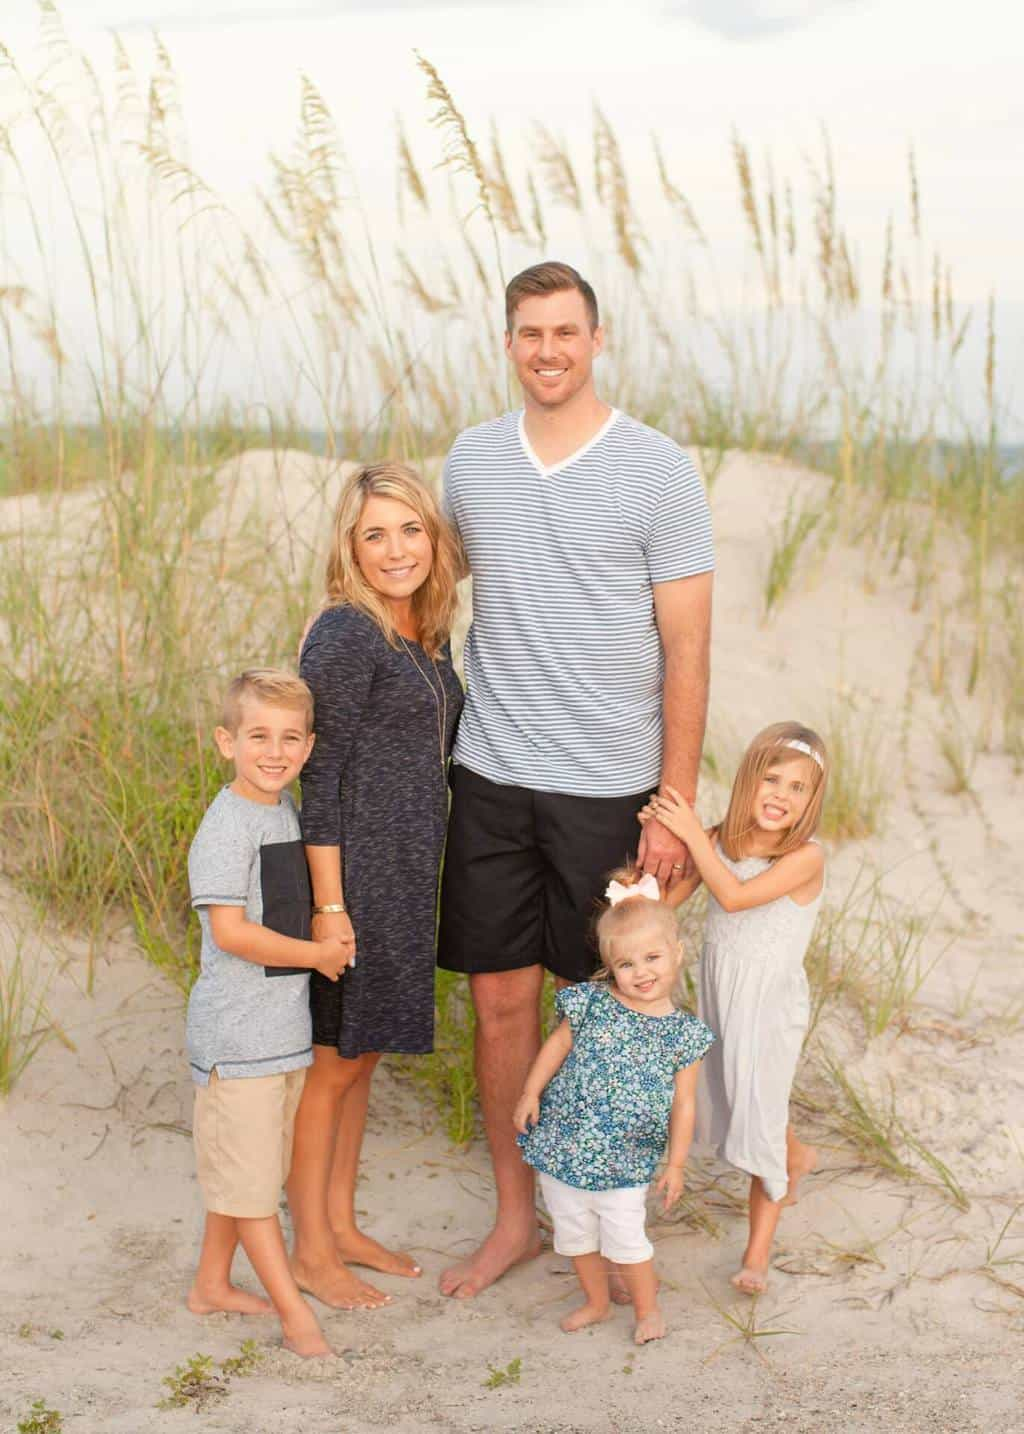 Best Summer Beach Family Photo Ideas - What to Wear and More!